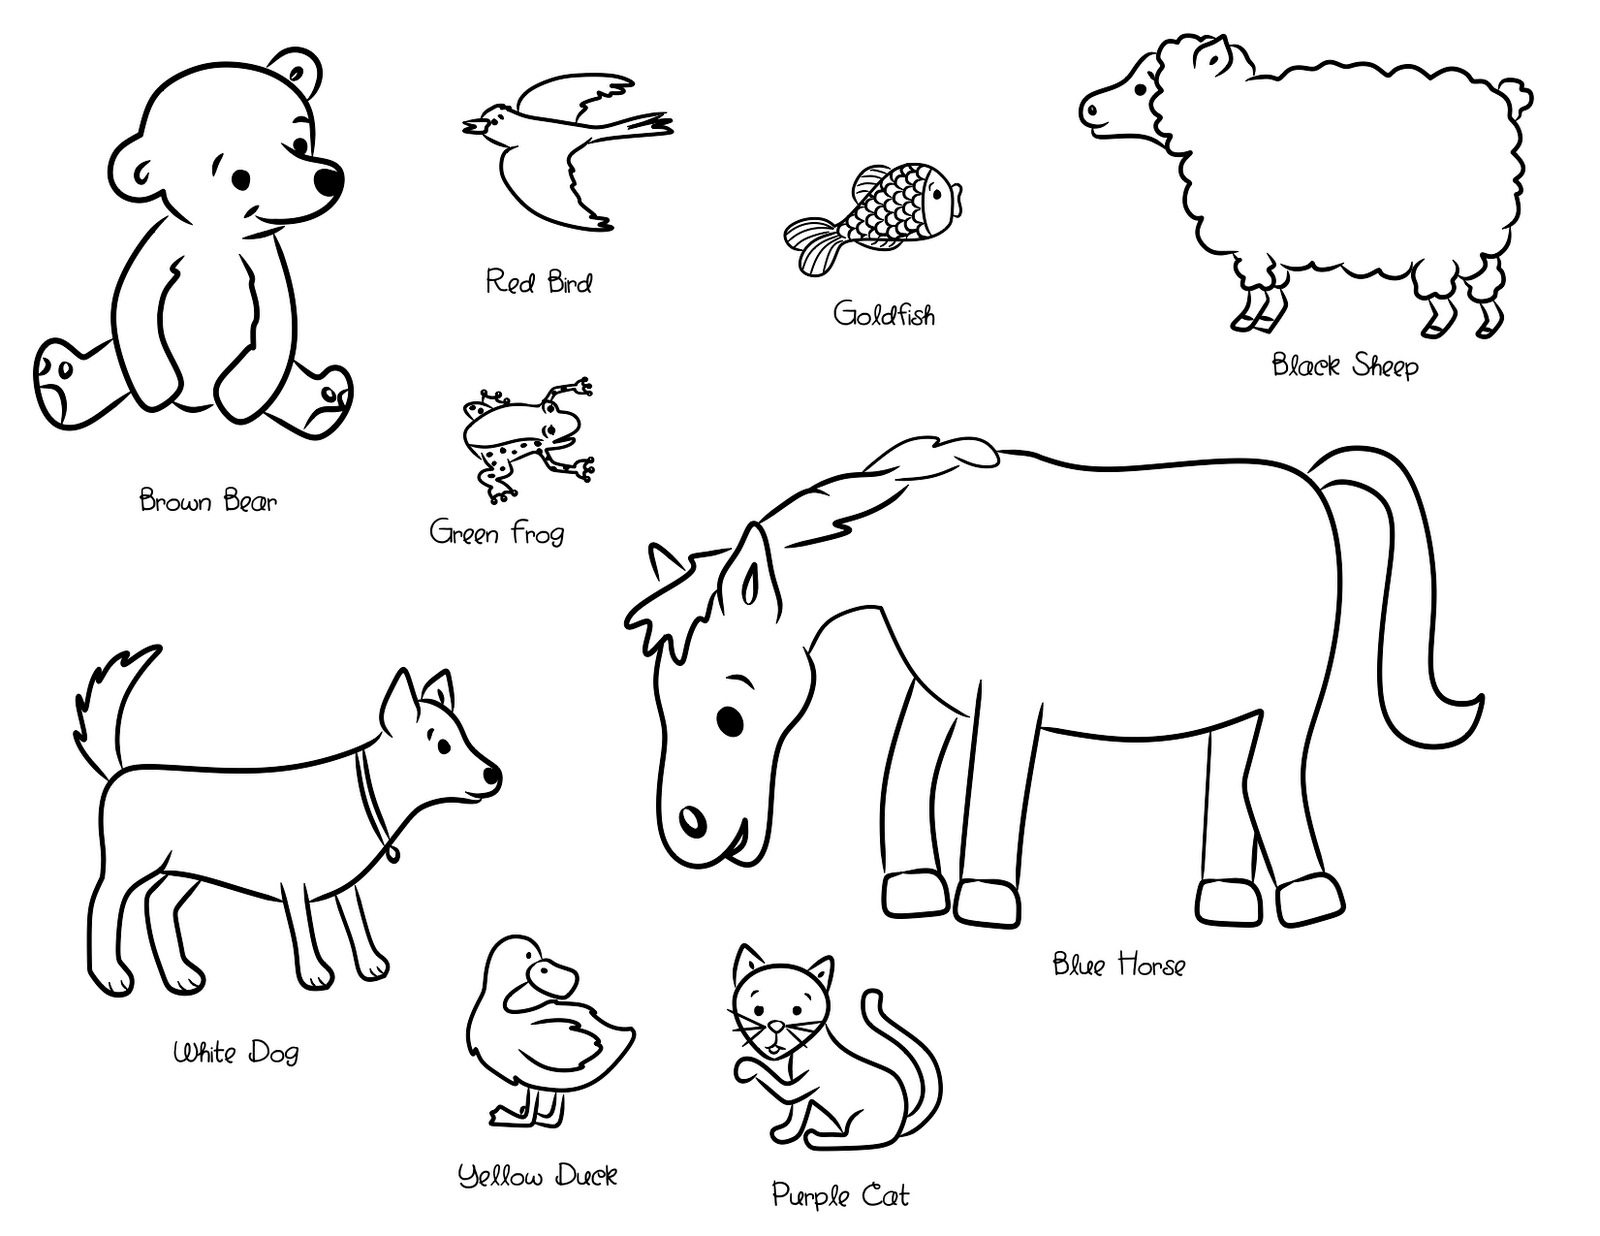 brown bear carle coloring pages - photo#2